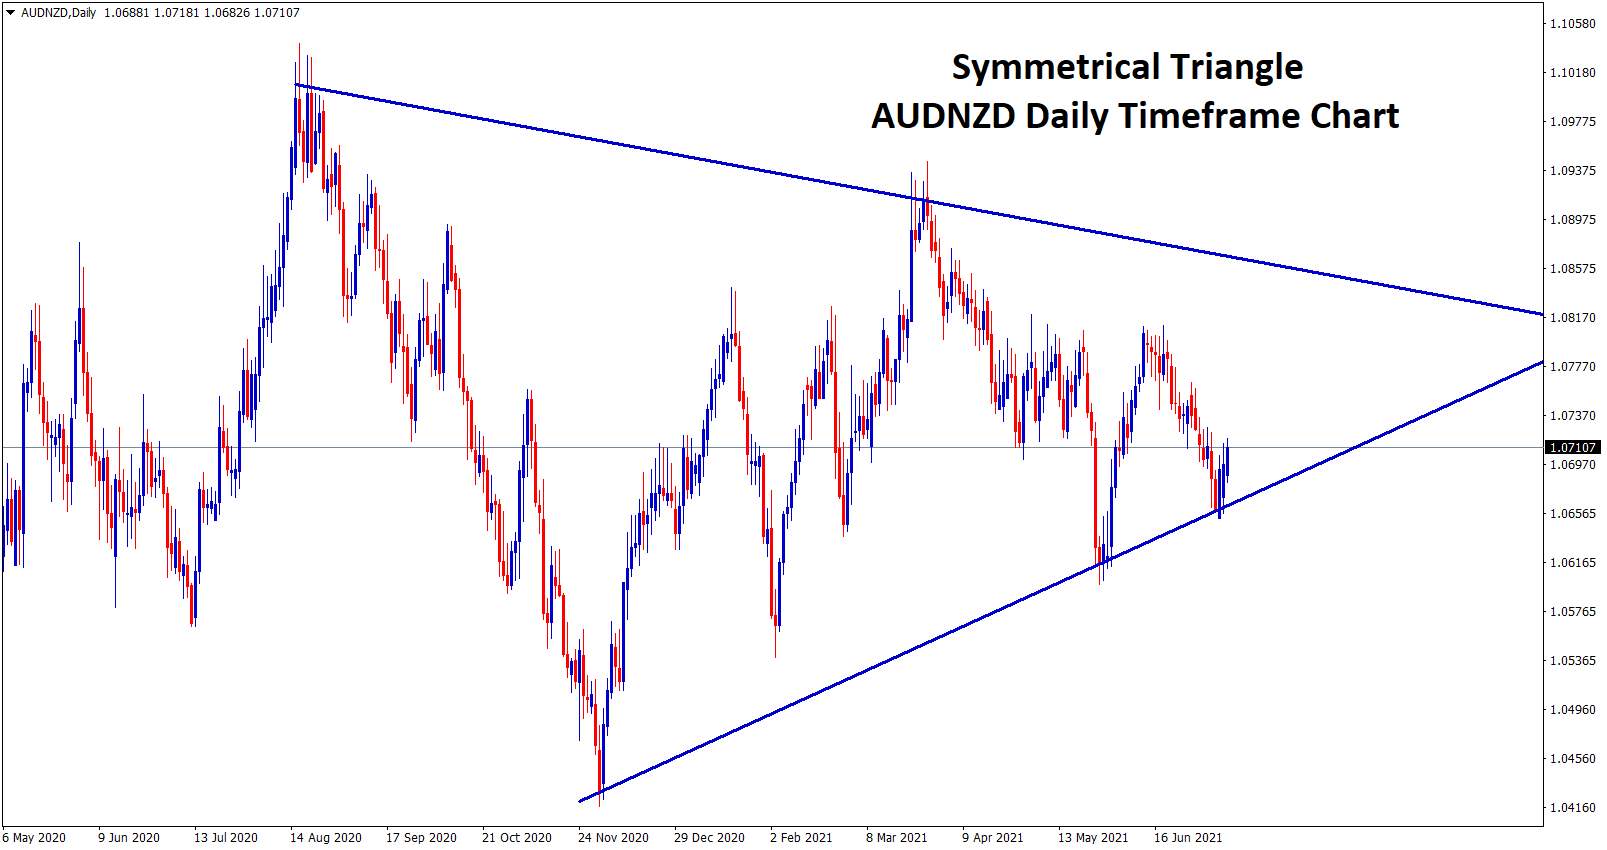 AUDNZD has formed a Symmetrical Triangle pattern in the daily timeframe